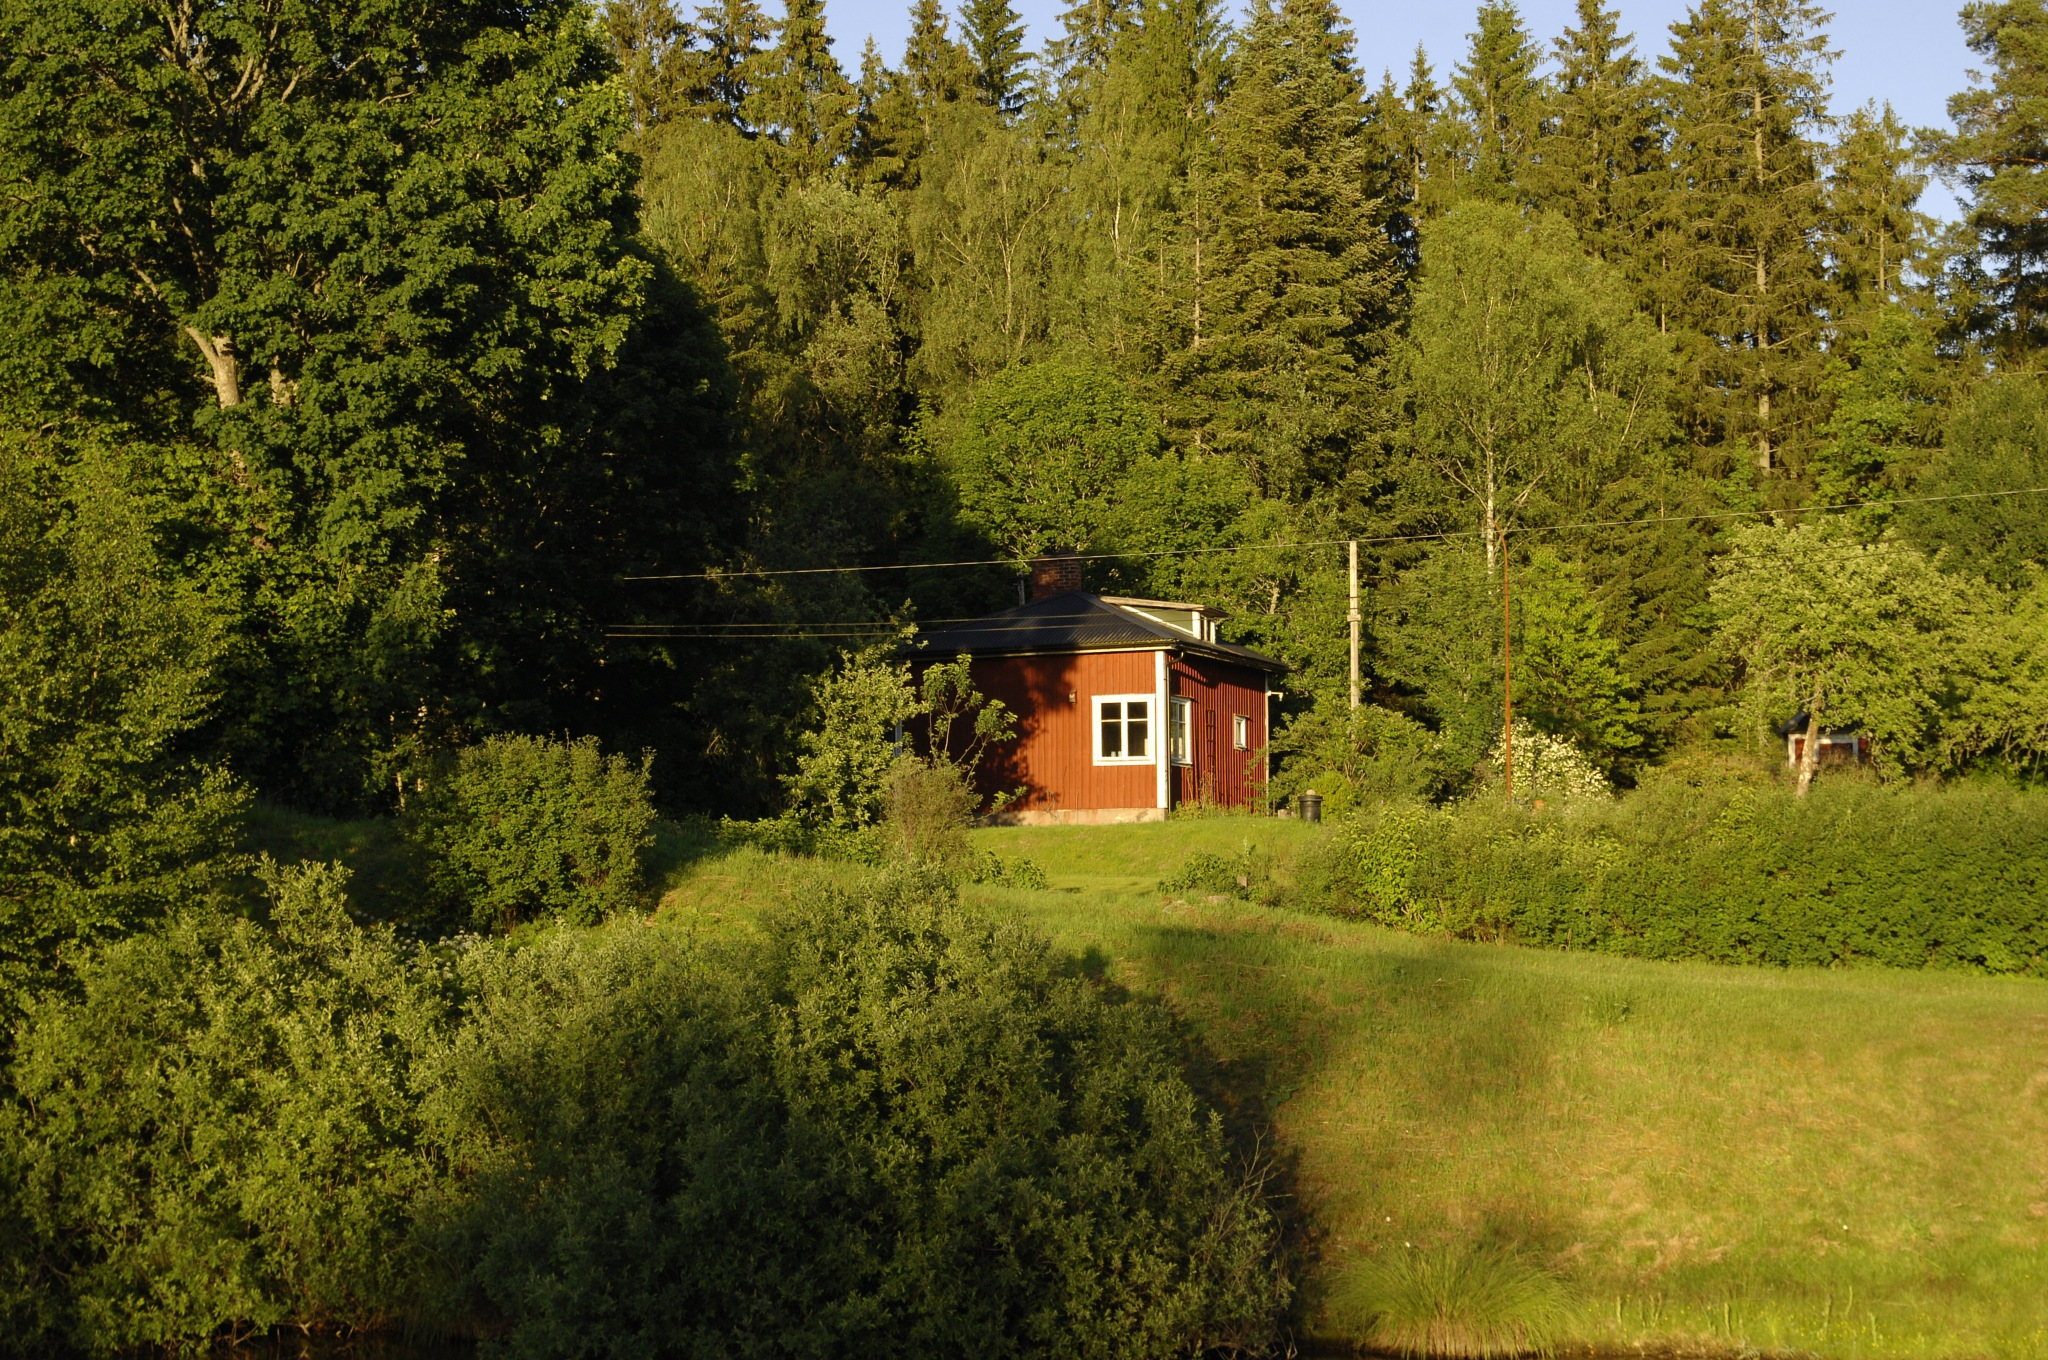 House in the forest by Lars R